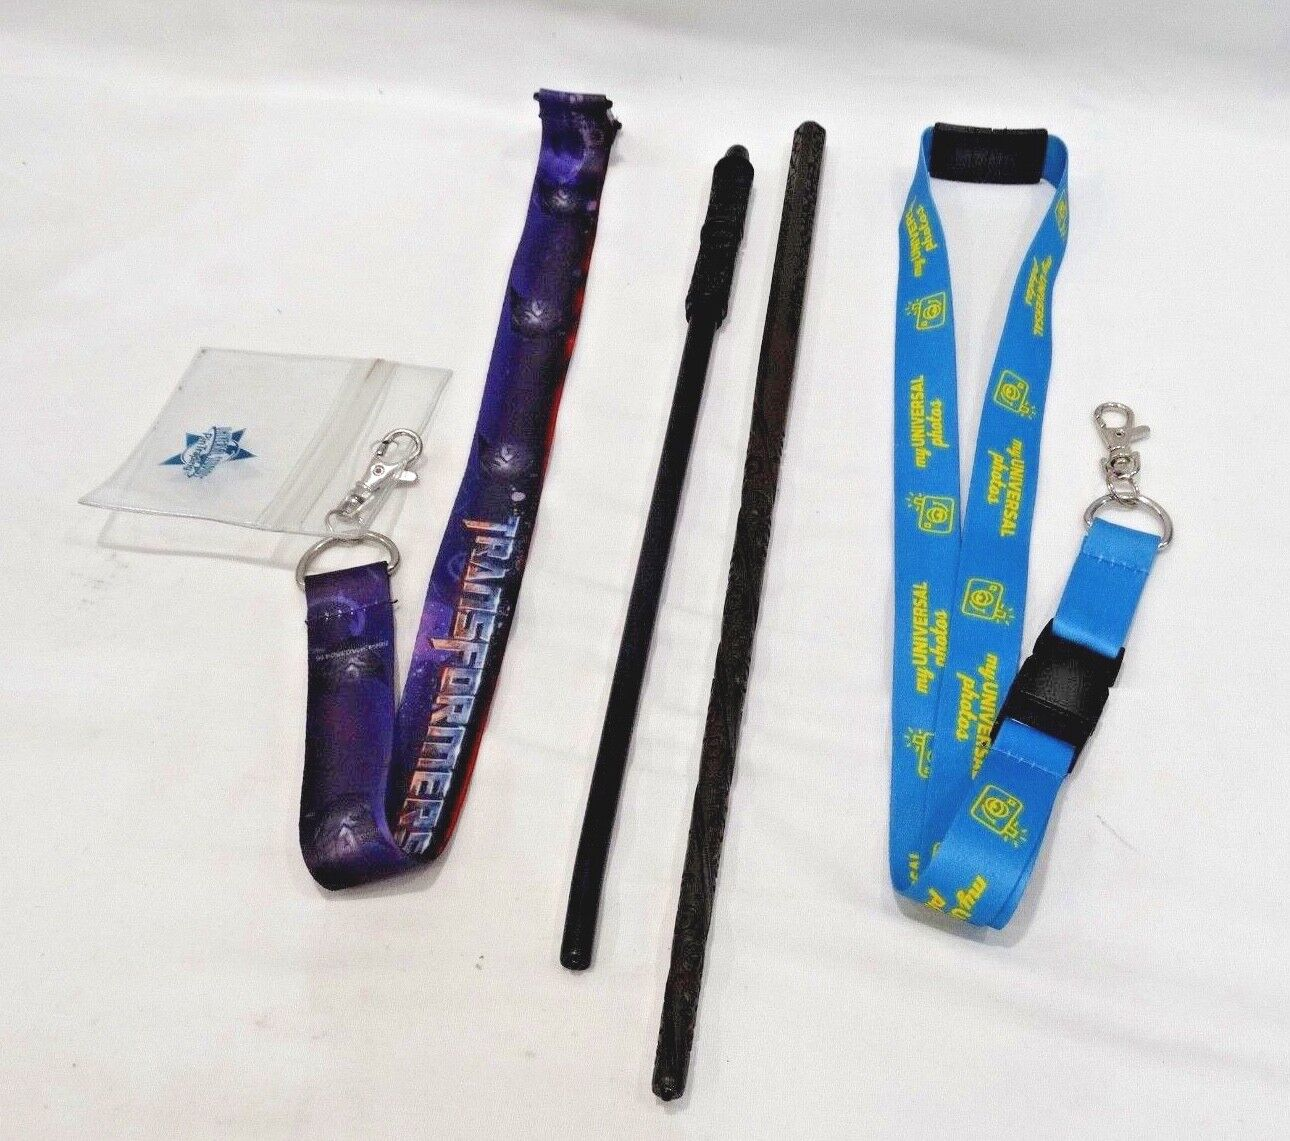 Universal Studios Professor Snape and Sirus Black Interactive Wands + Lanyards